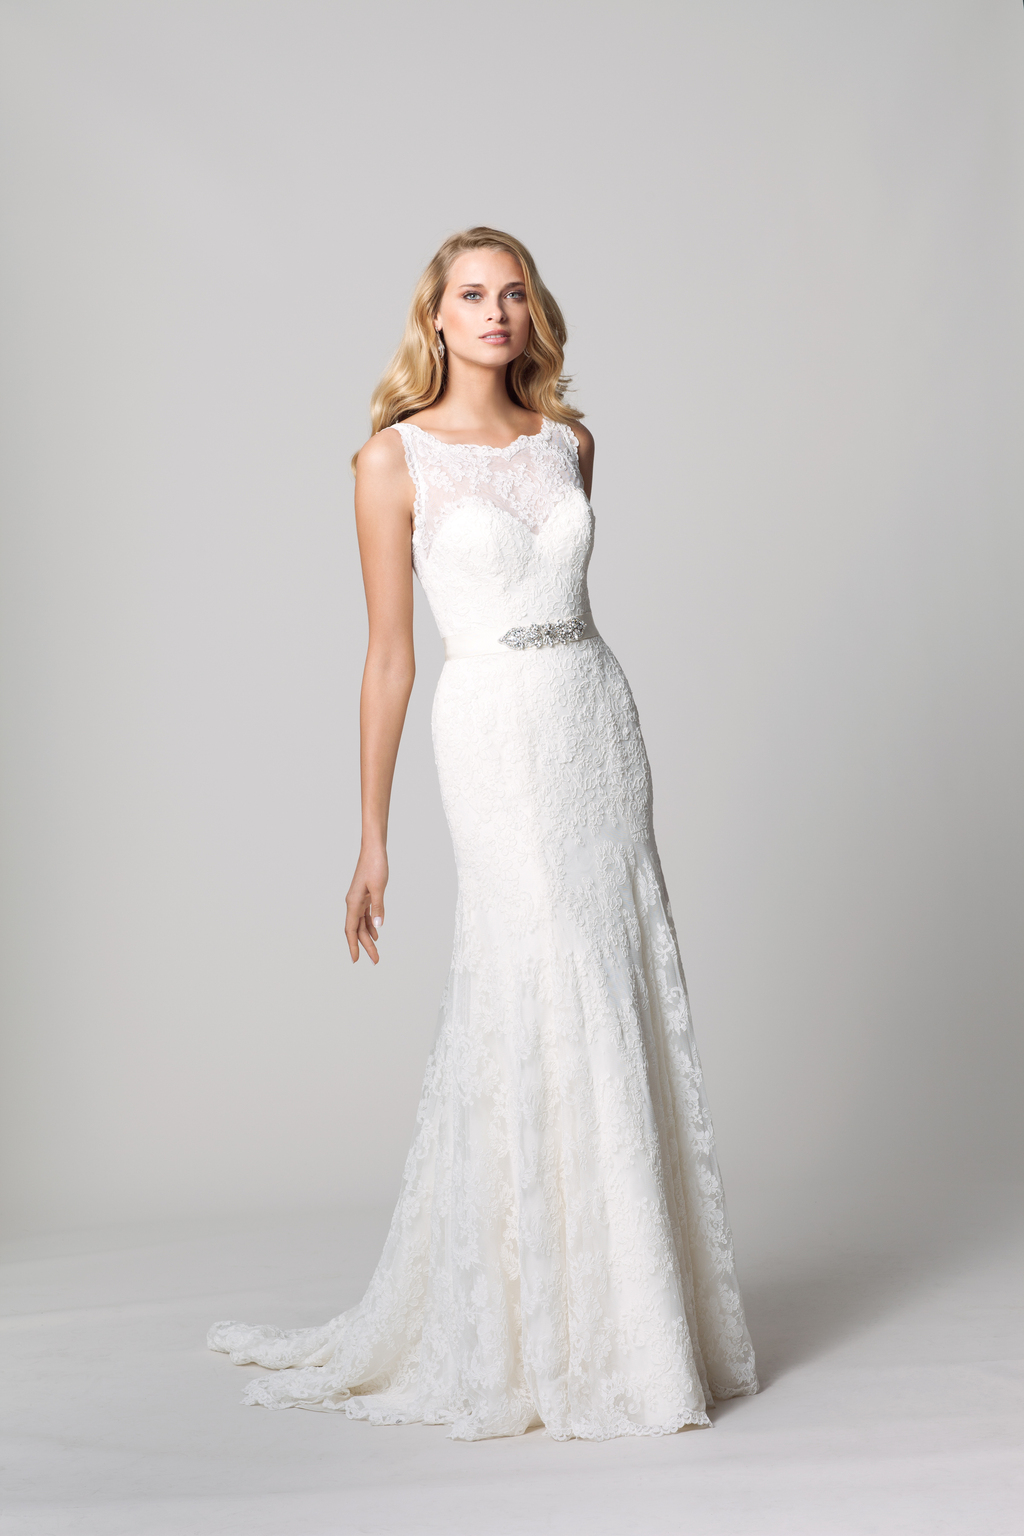 Fall-2012-wedding-dress-wtoo-bridal-gown-by-watters-5.full